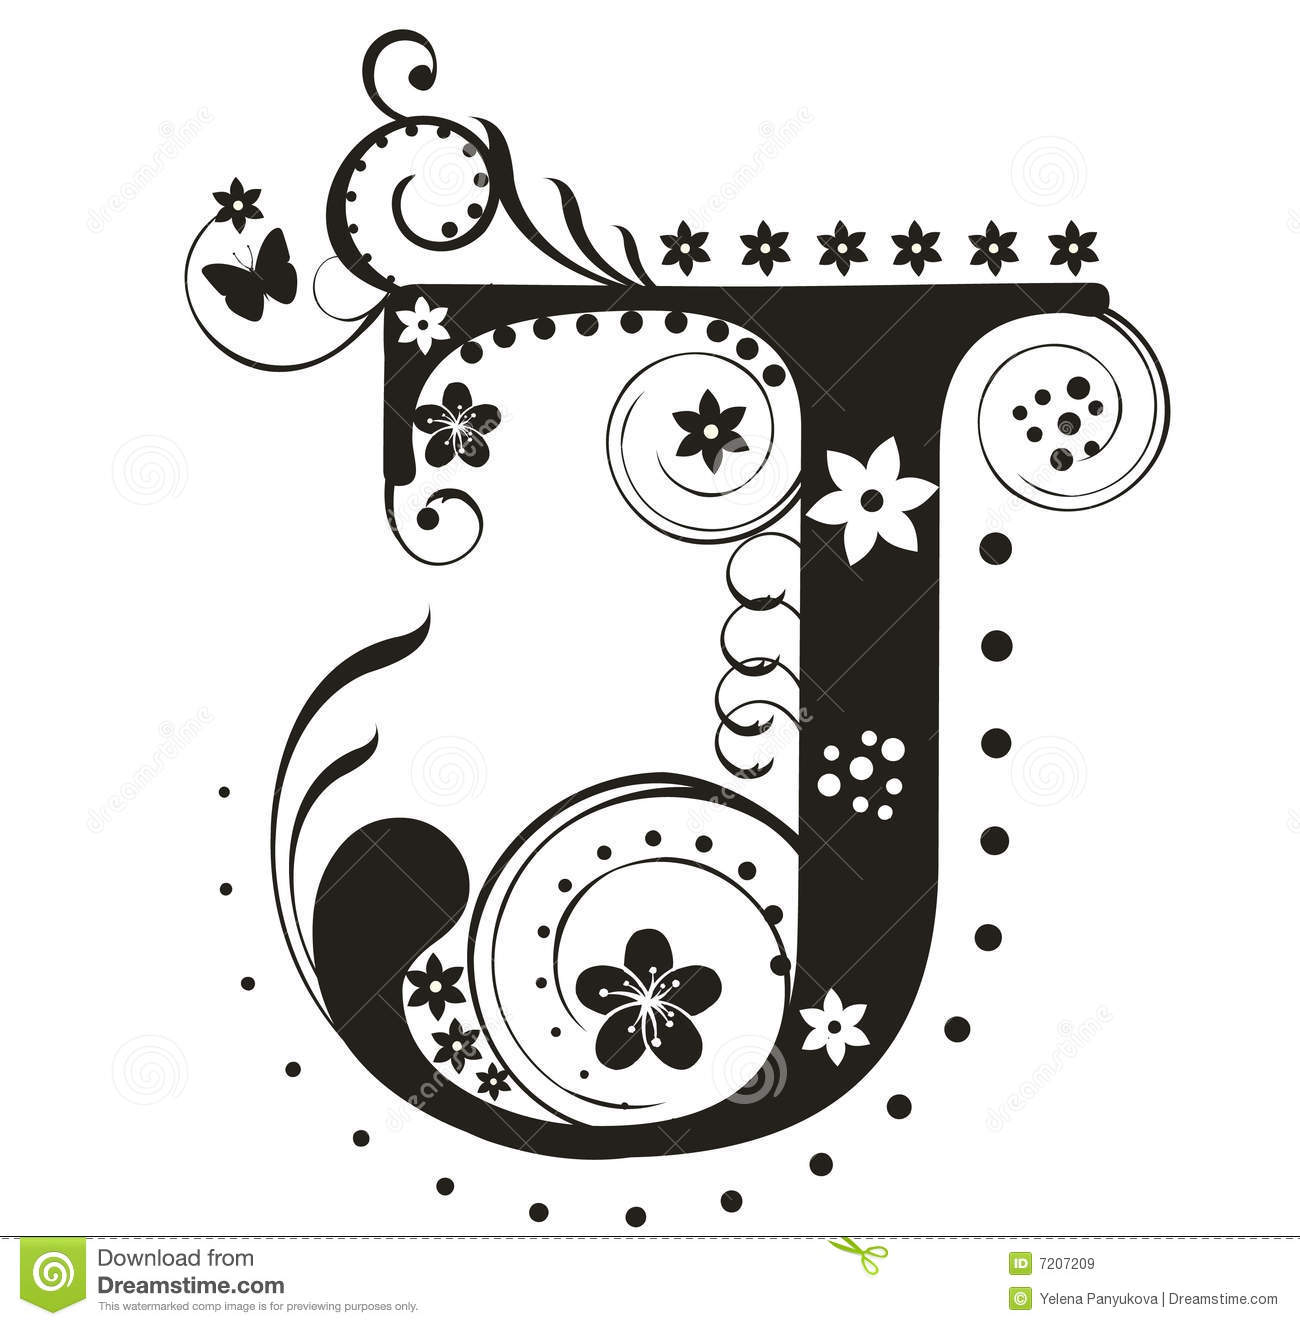 Letter J Royalty Free Stock Images